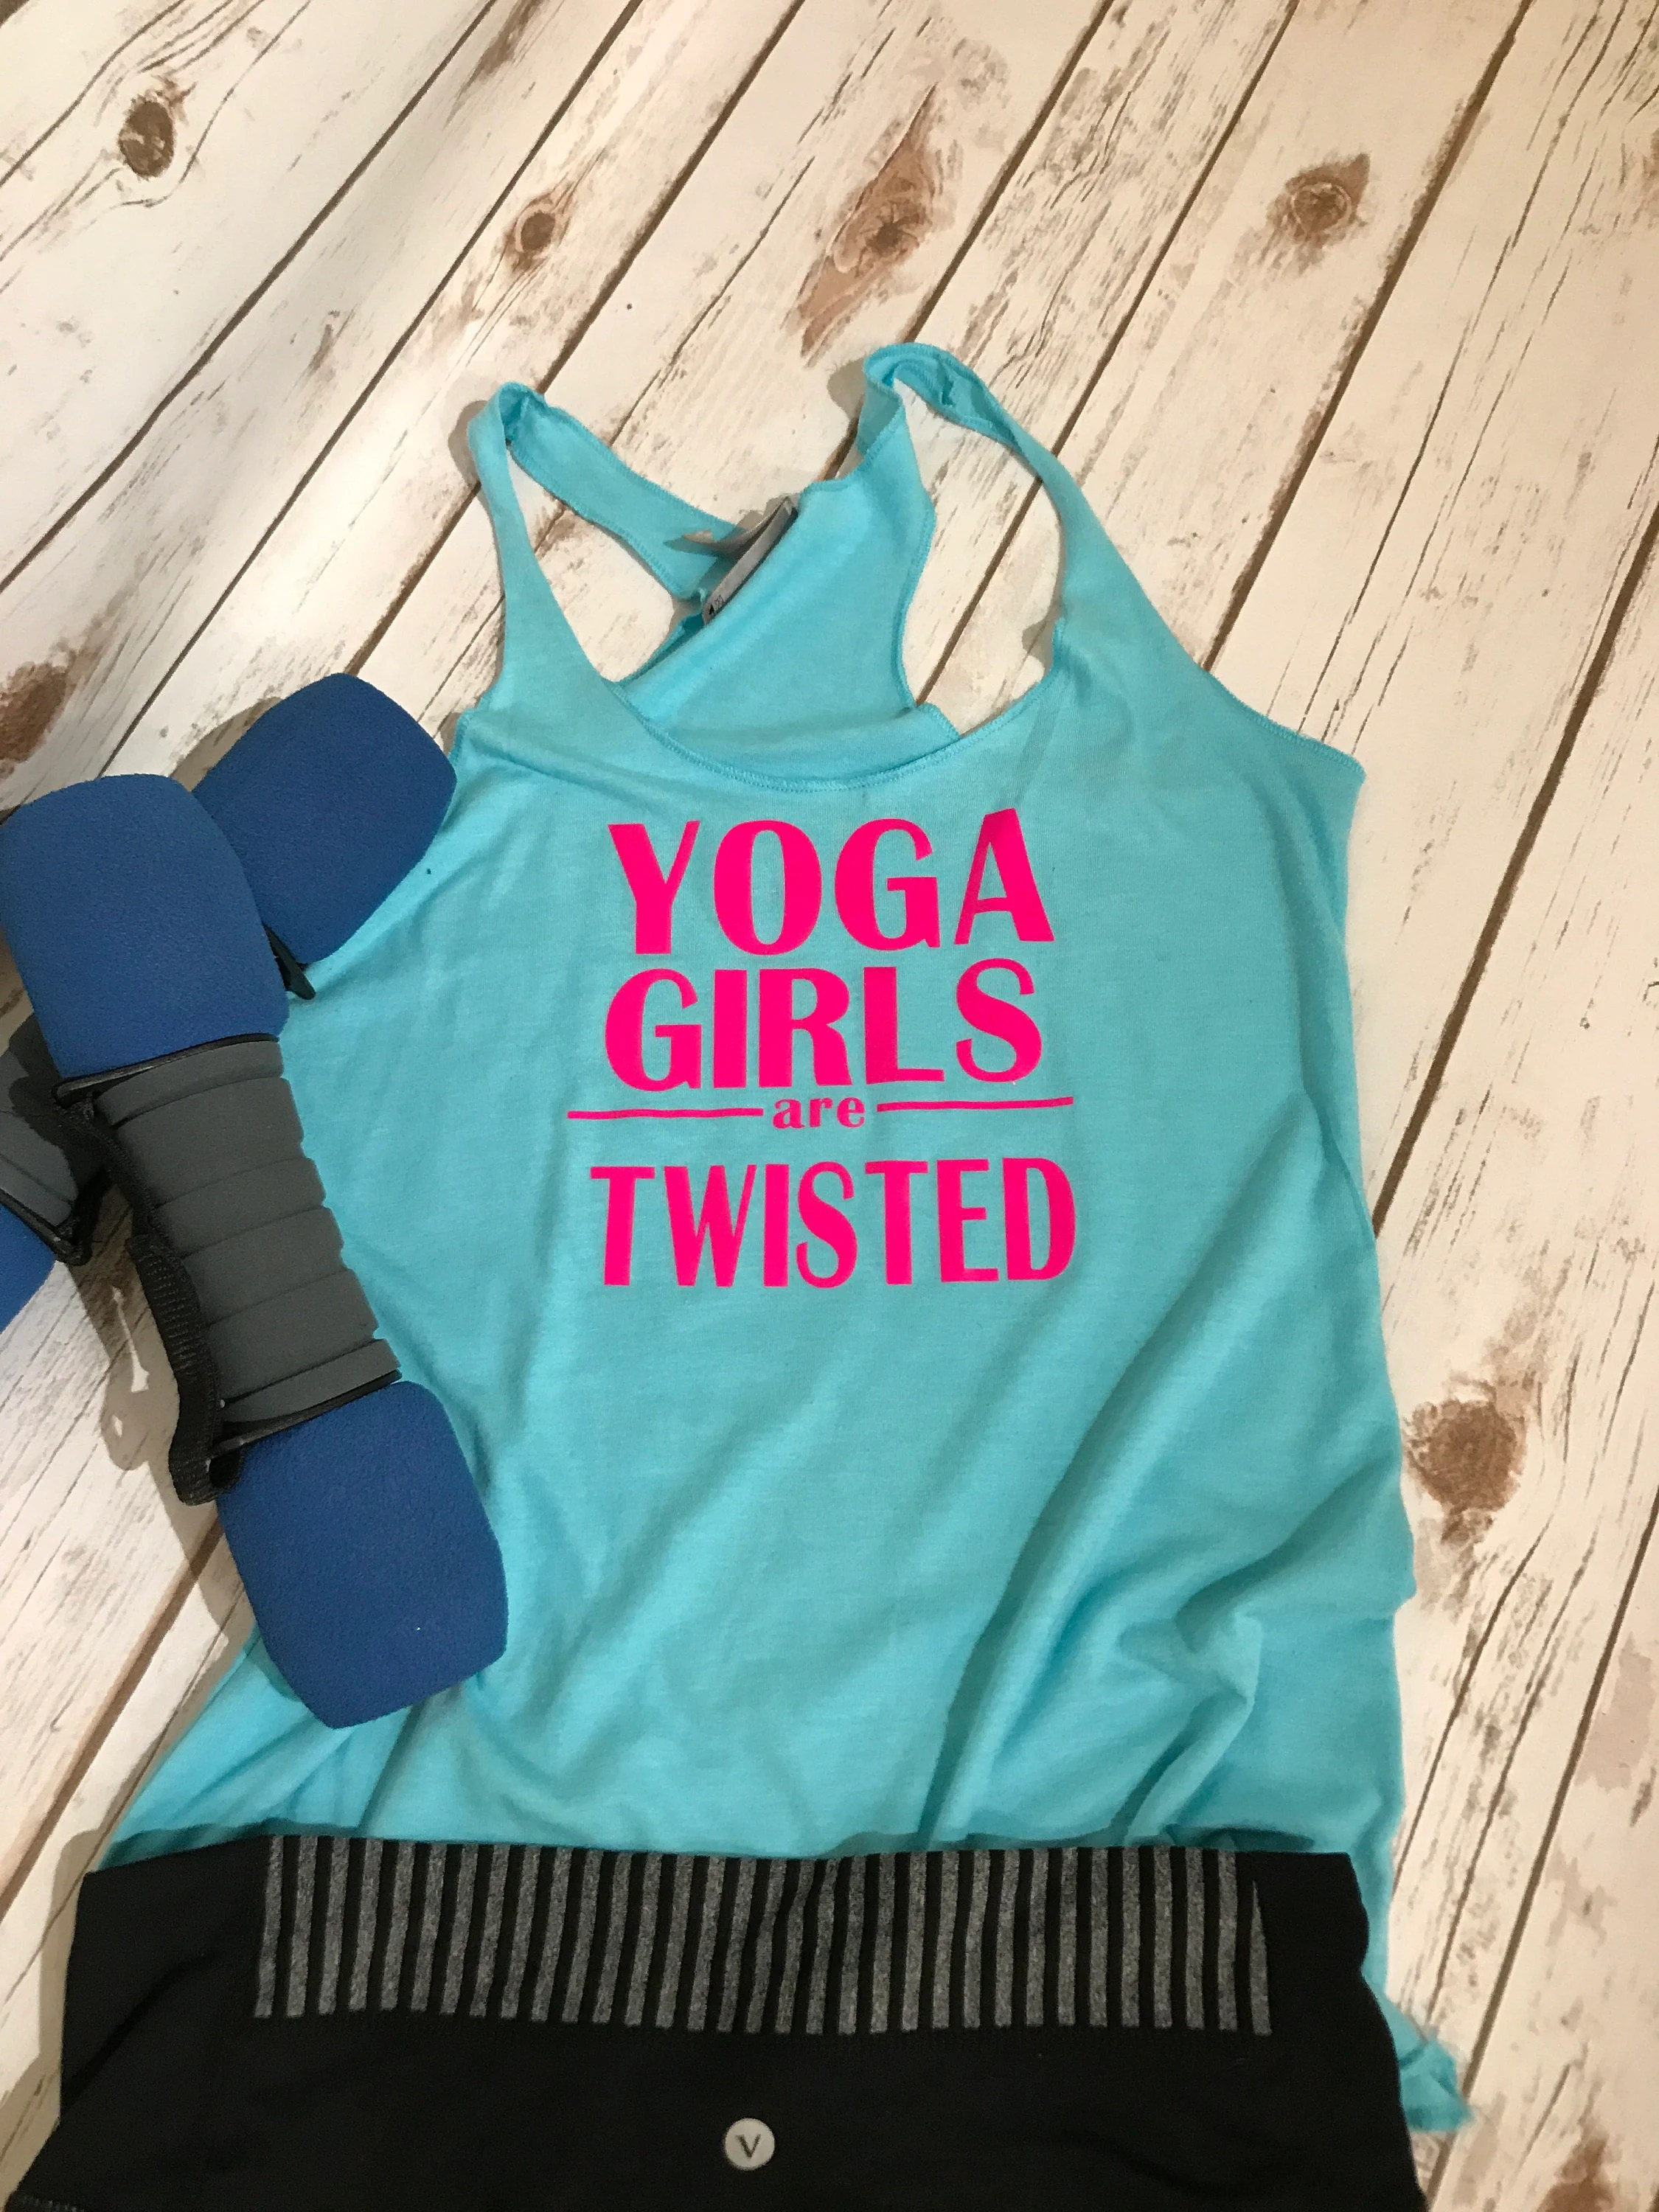 Beleuchtung Yoga Studio Yoga Girls Are Twisted Yoga Tank Gym Hot Yoga Studio Shirt Yoga Instructor Fitness Shirt Yoga